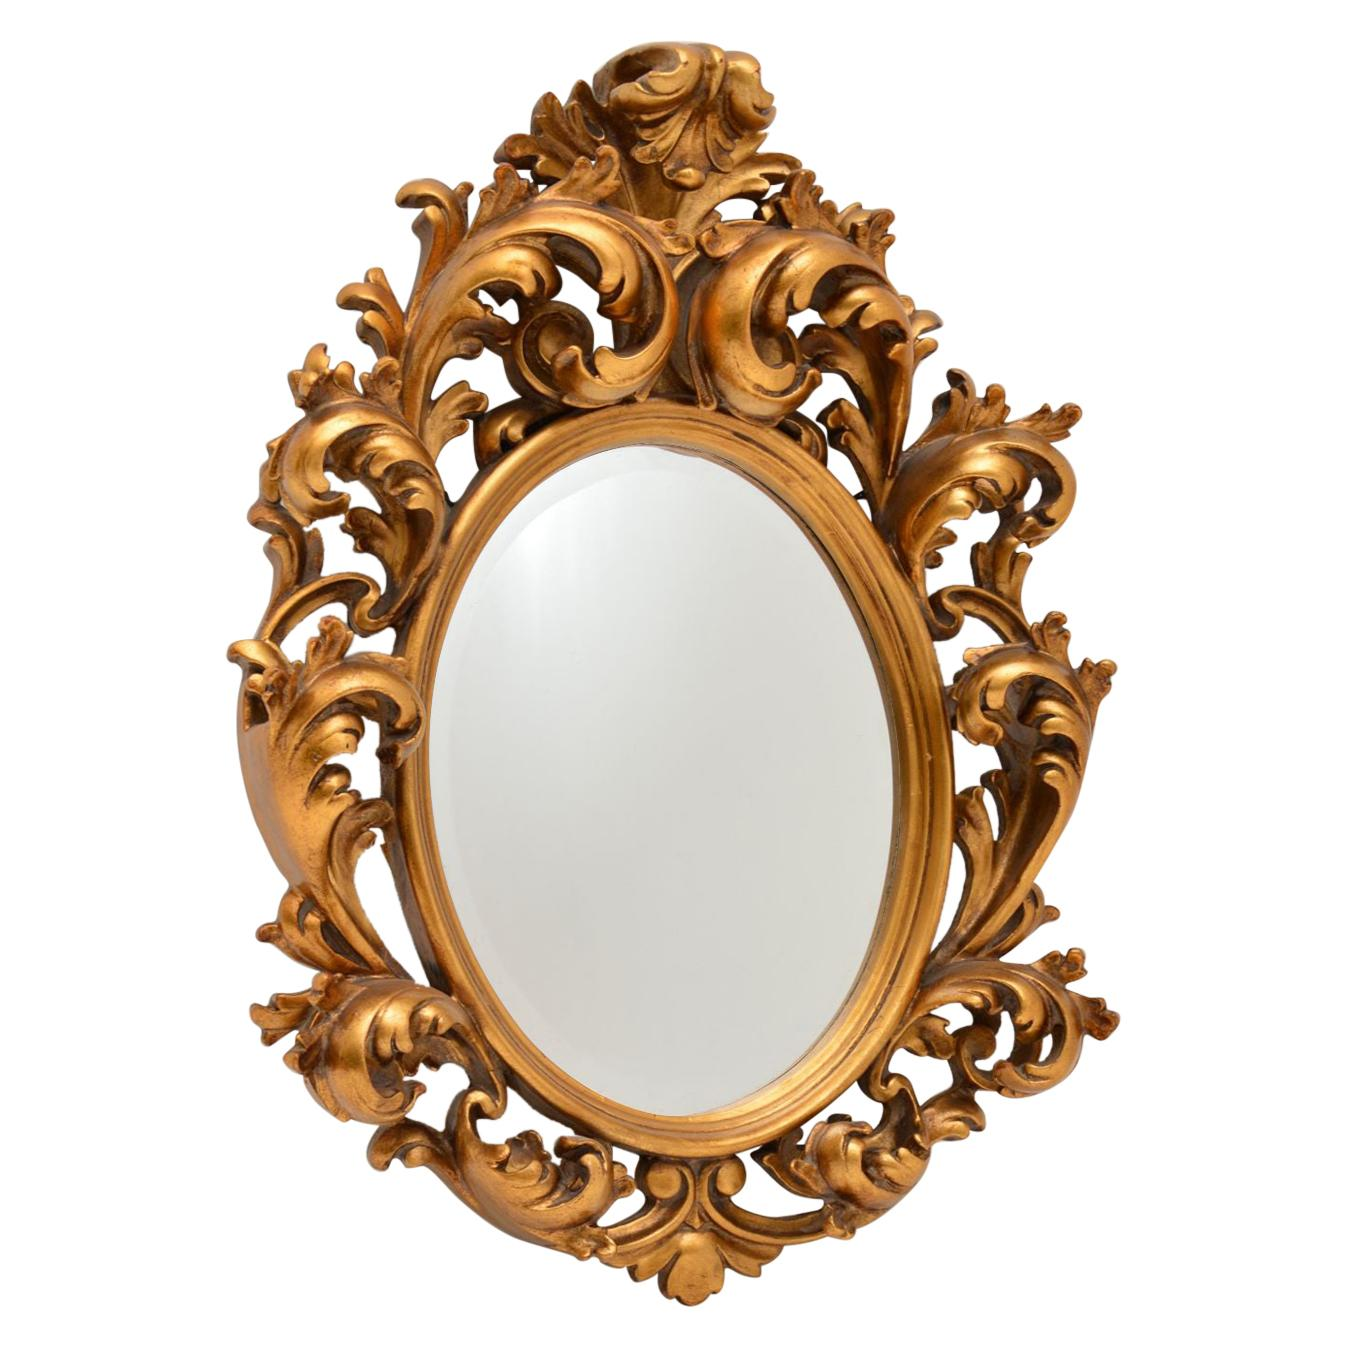 Antique French Rococo Style Gilt Wood Mirror